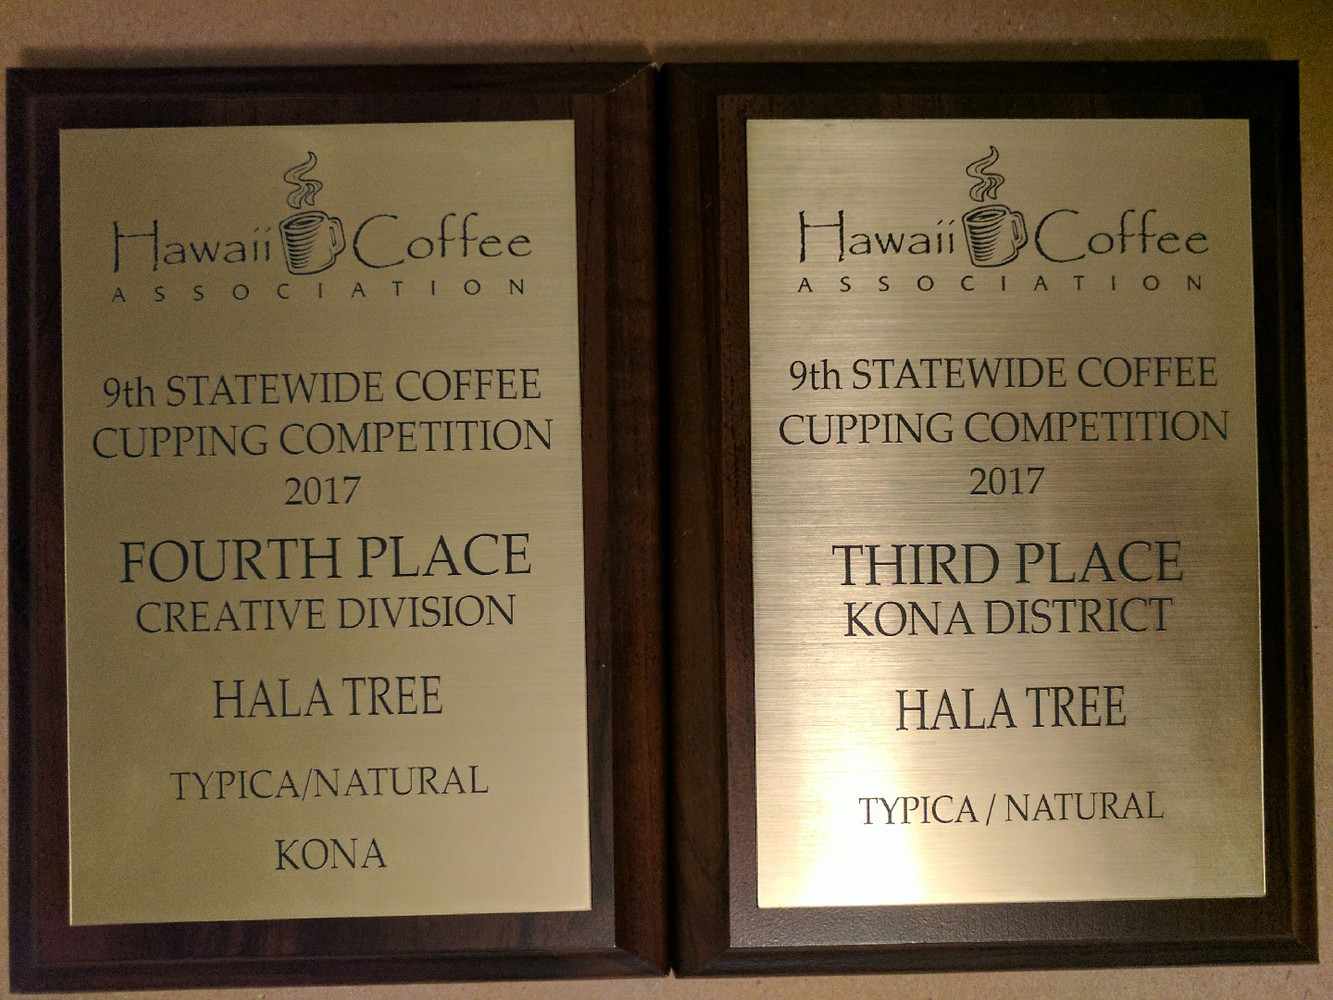 Award winning coffee - Certified Organic 100% Kona